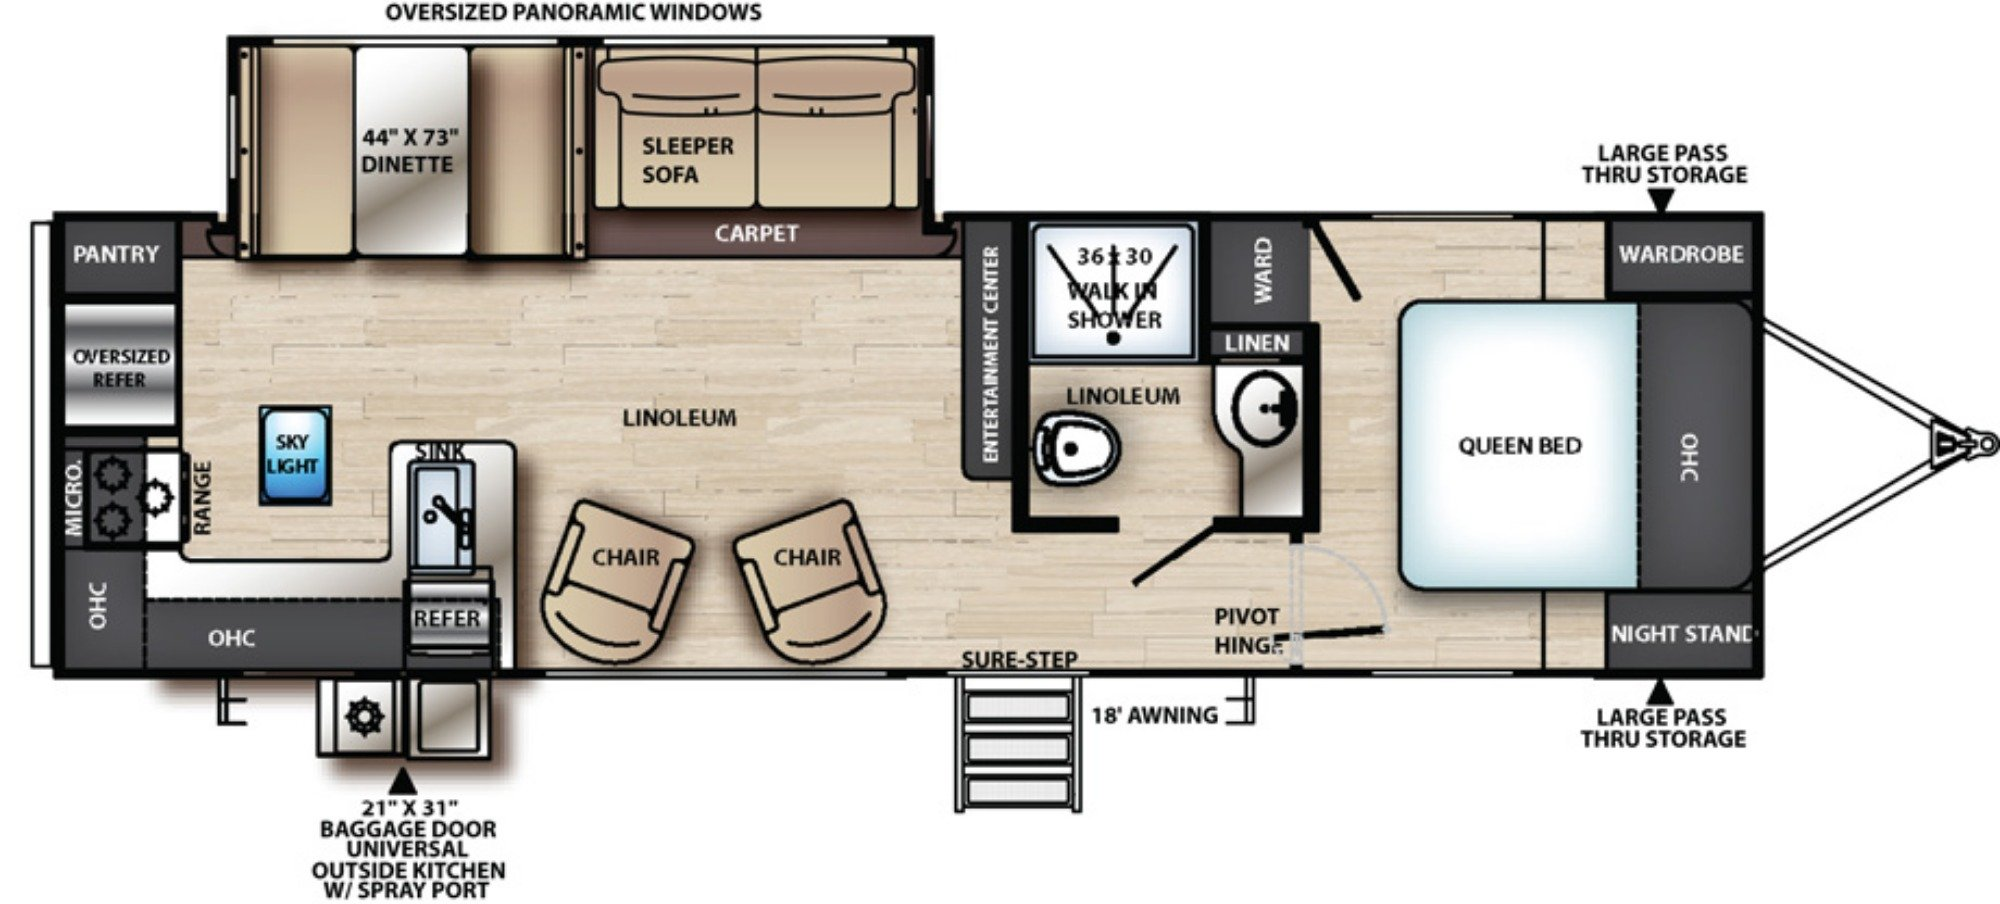 View Floor Plan for 2019 FOREST RIVER VIBE 26RK